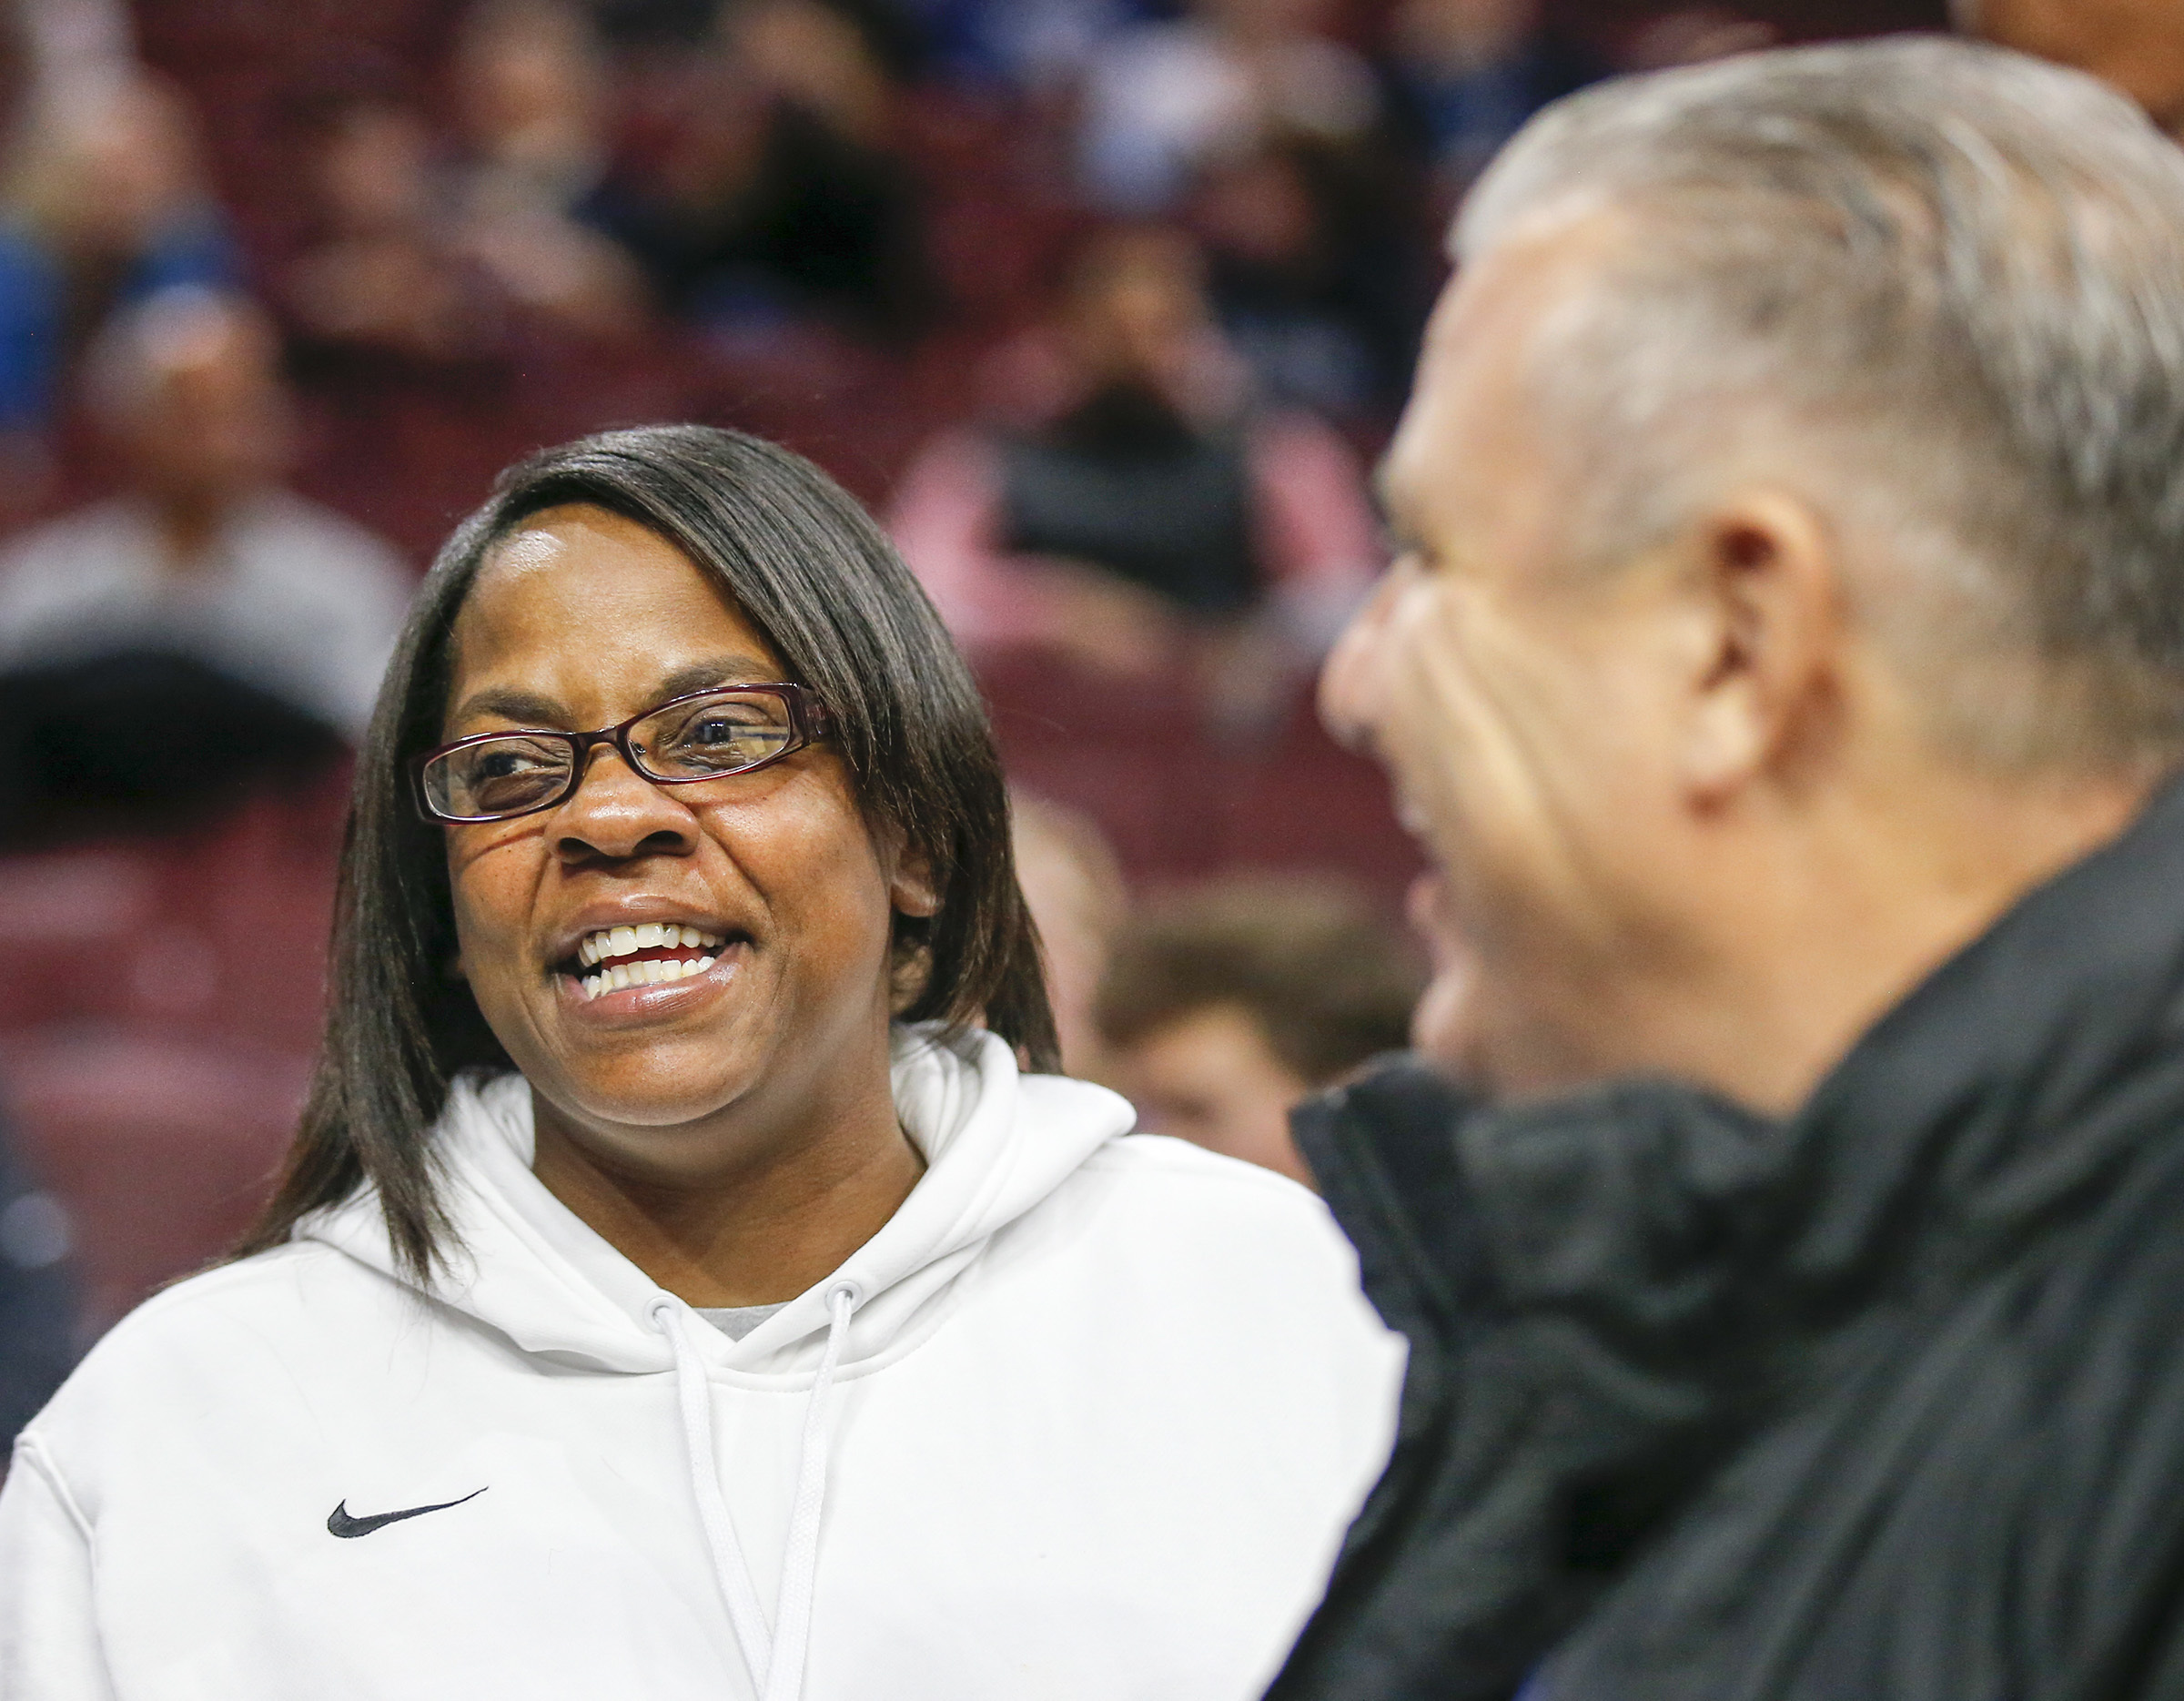 Ayesha Cosby Cosby-Roundtree, mother of Villanova forward Dhamir Cosby-Roundtree, smiles standing next to Neumann-Goretti boy´s head basketball coach Carl Arrigale before Villanova played Columbia on Friday, November 10, 2017 in Philadelphia. Arrigale coached Dhamir Cosby-Roundtree in high school. YONG KIM / Staff Photographer